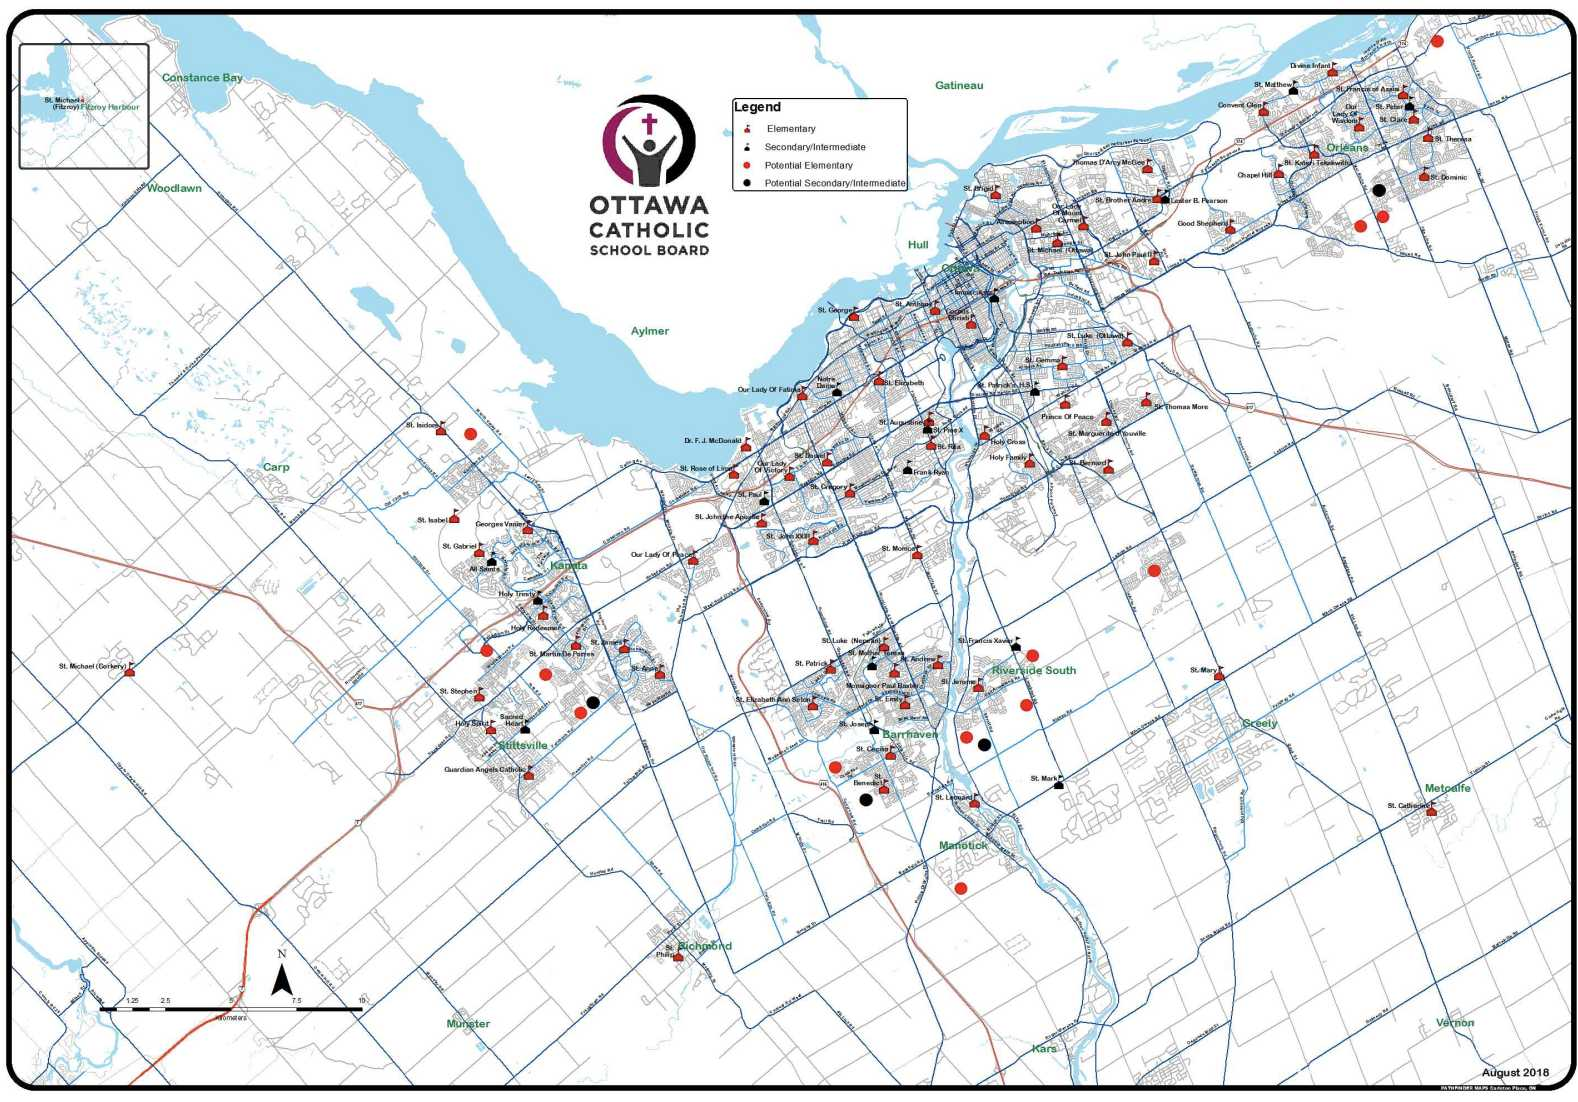 School boundary maps at the OCSB